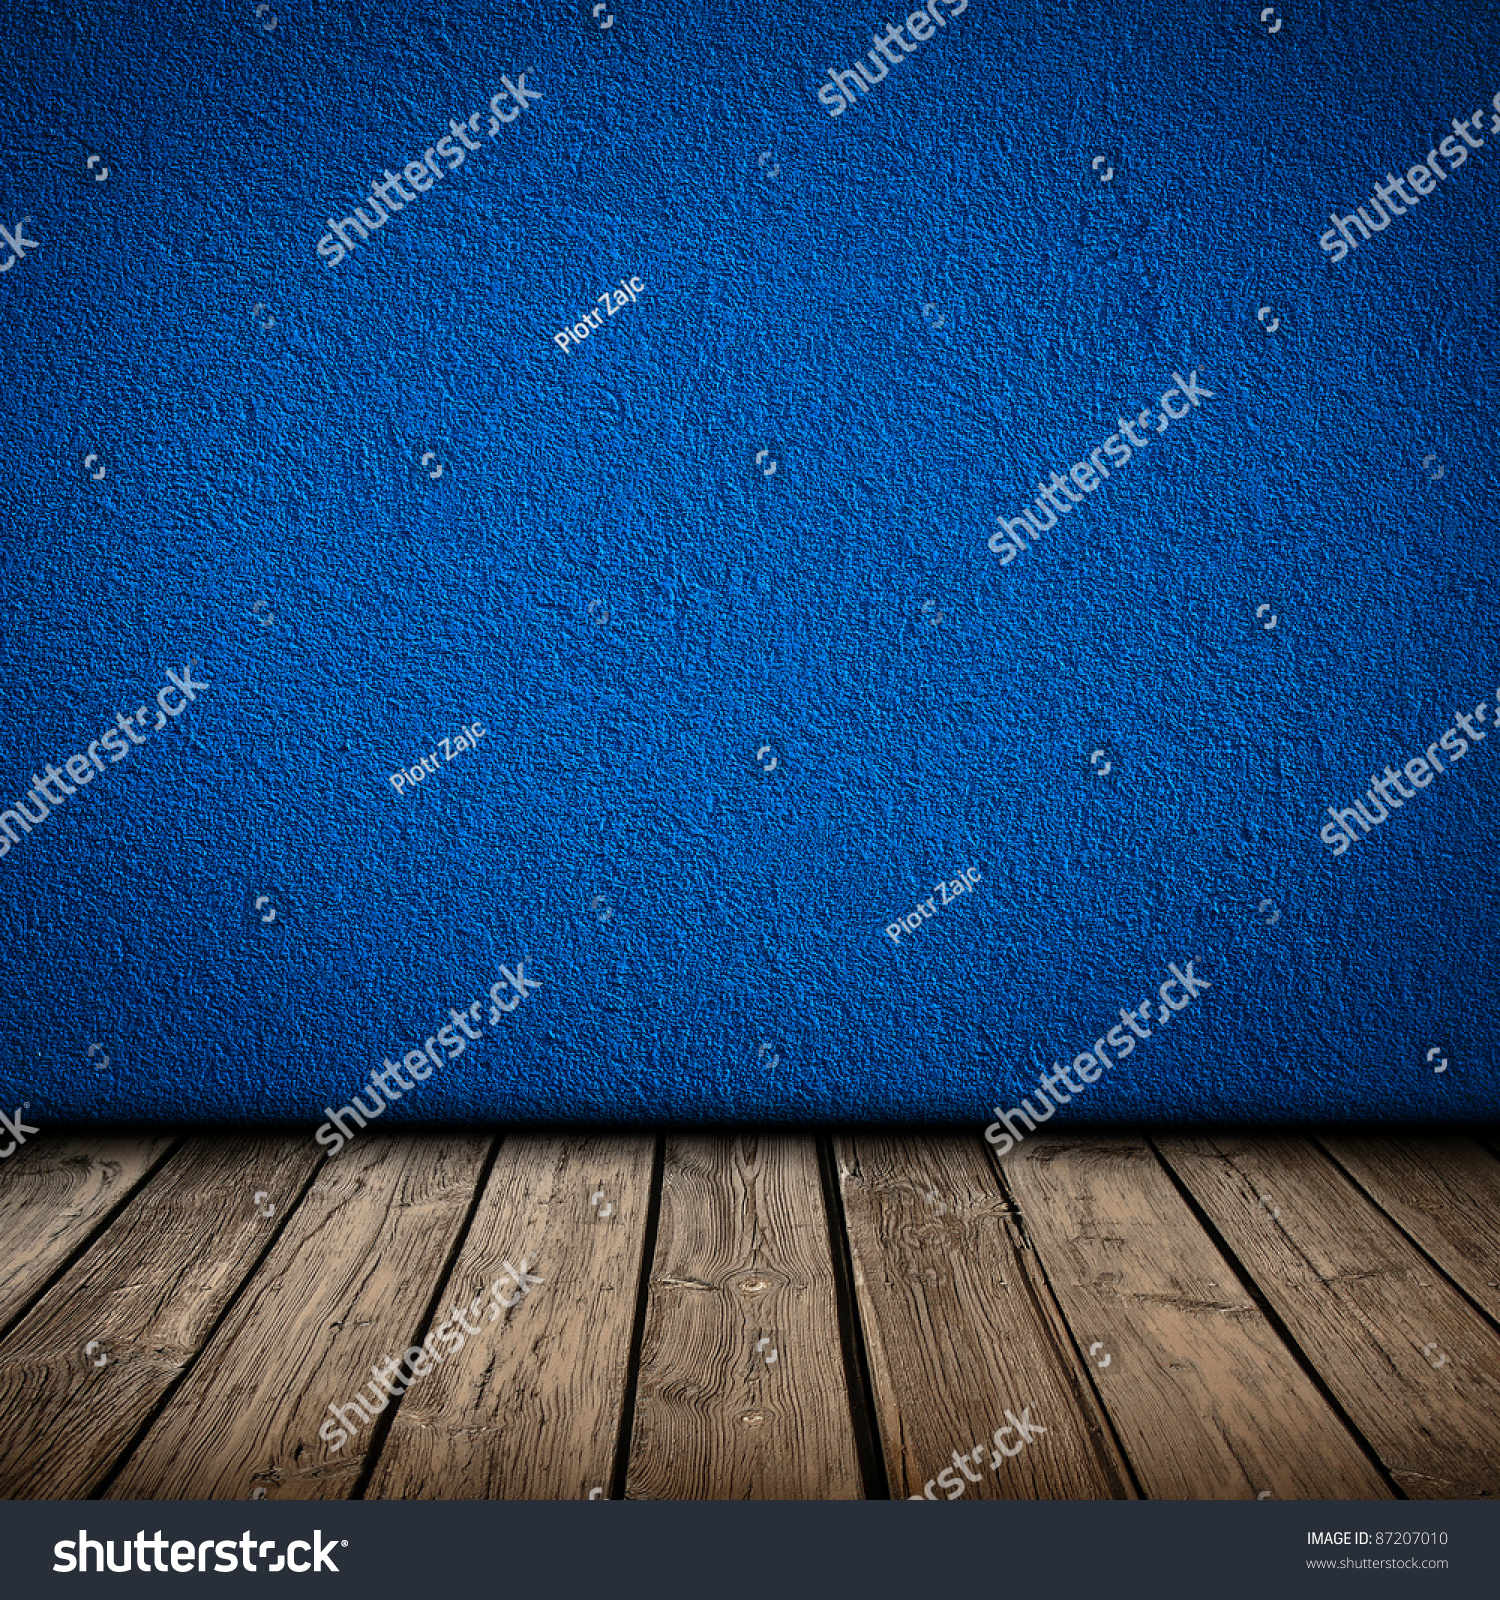 Blue Wall Wooden Floor Interior Background Stock Photo (Royalty Free ...